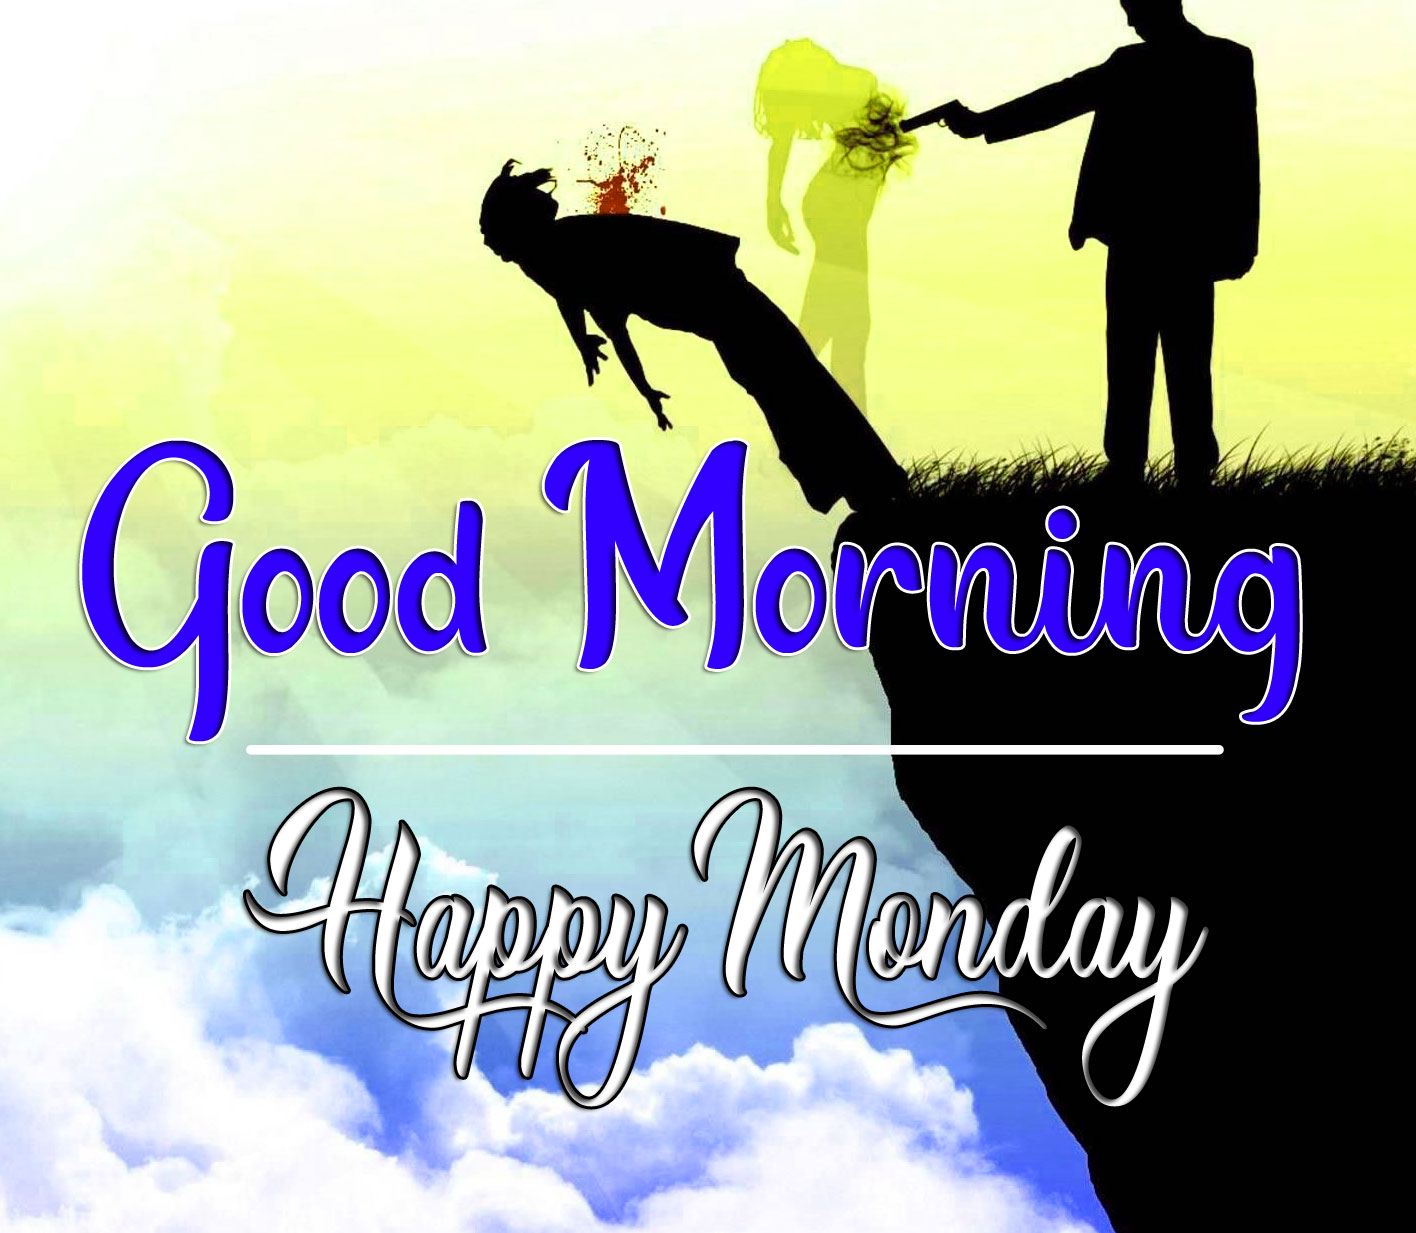 Lover HD Monday Good Morning Images 1